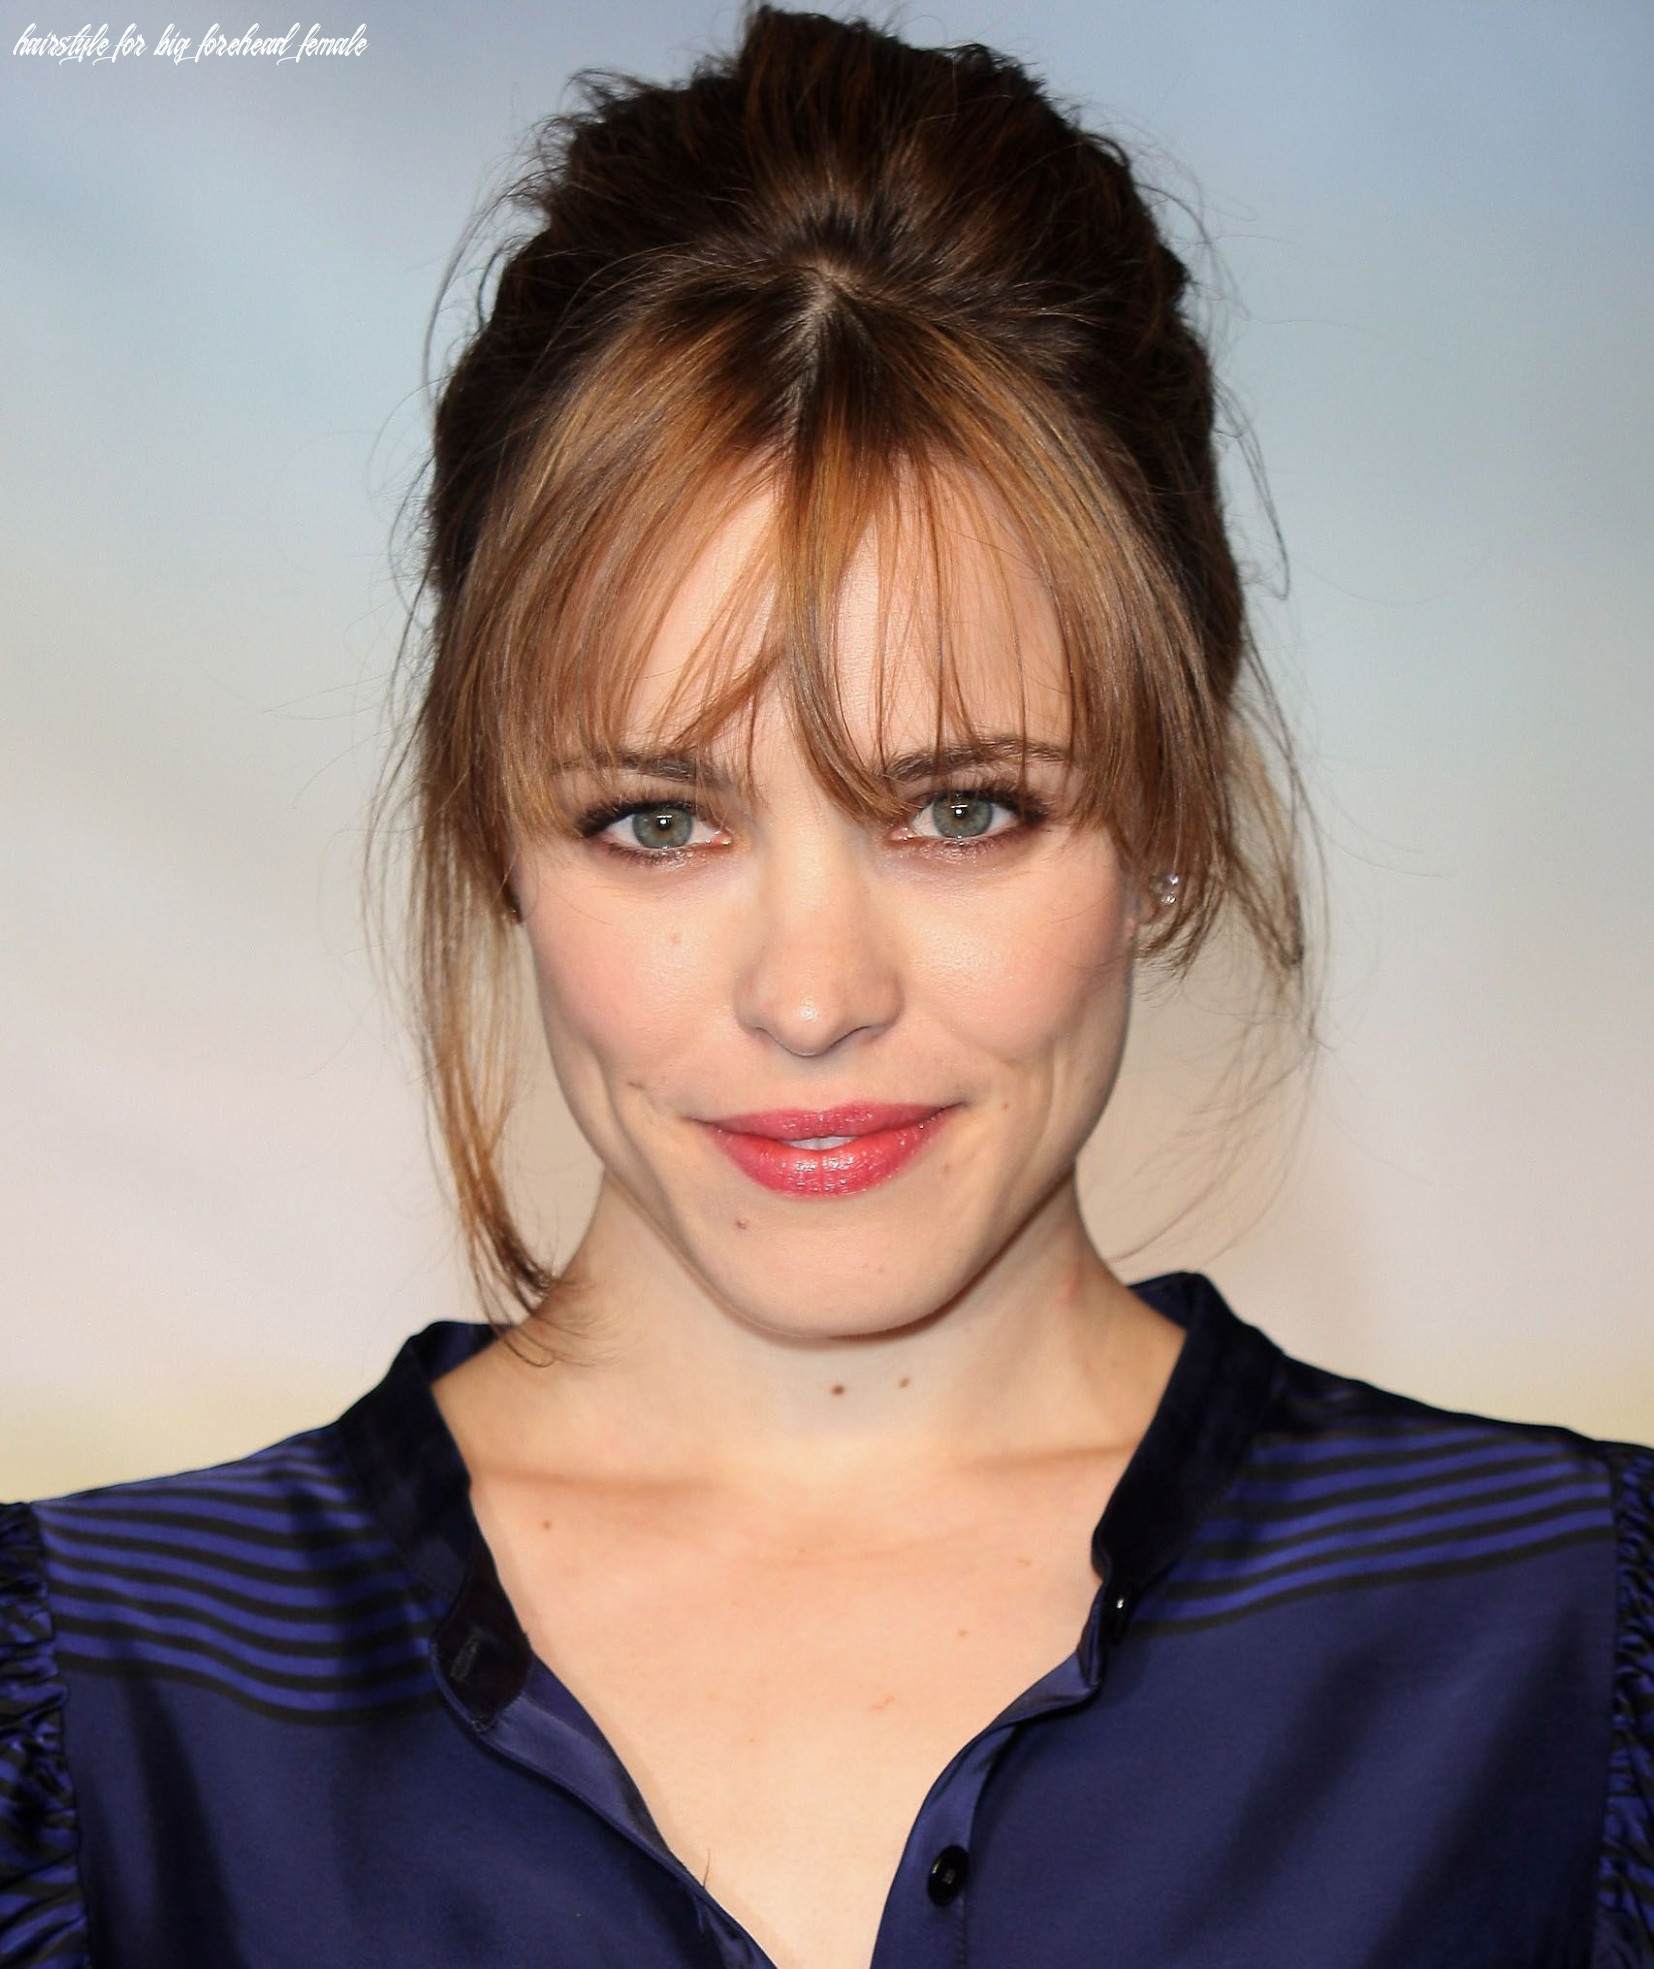 The most flattering haircuts for large foreheads, according to a